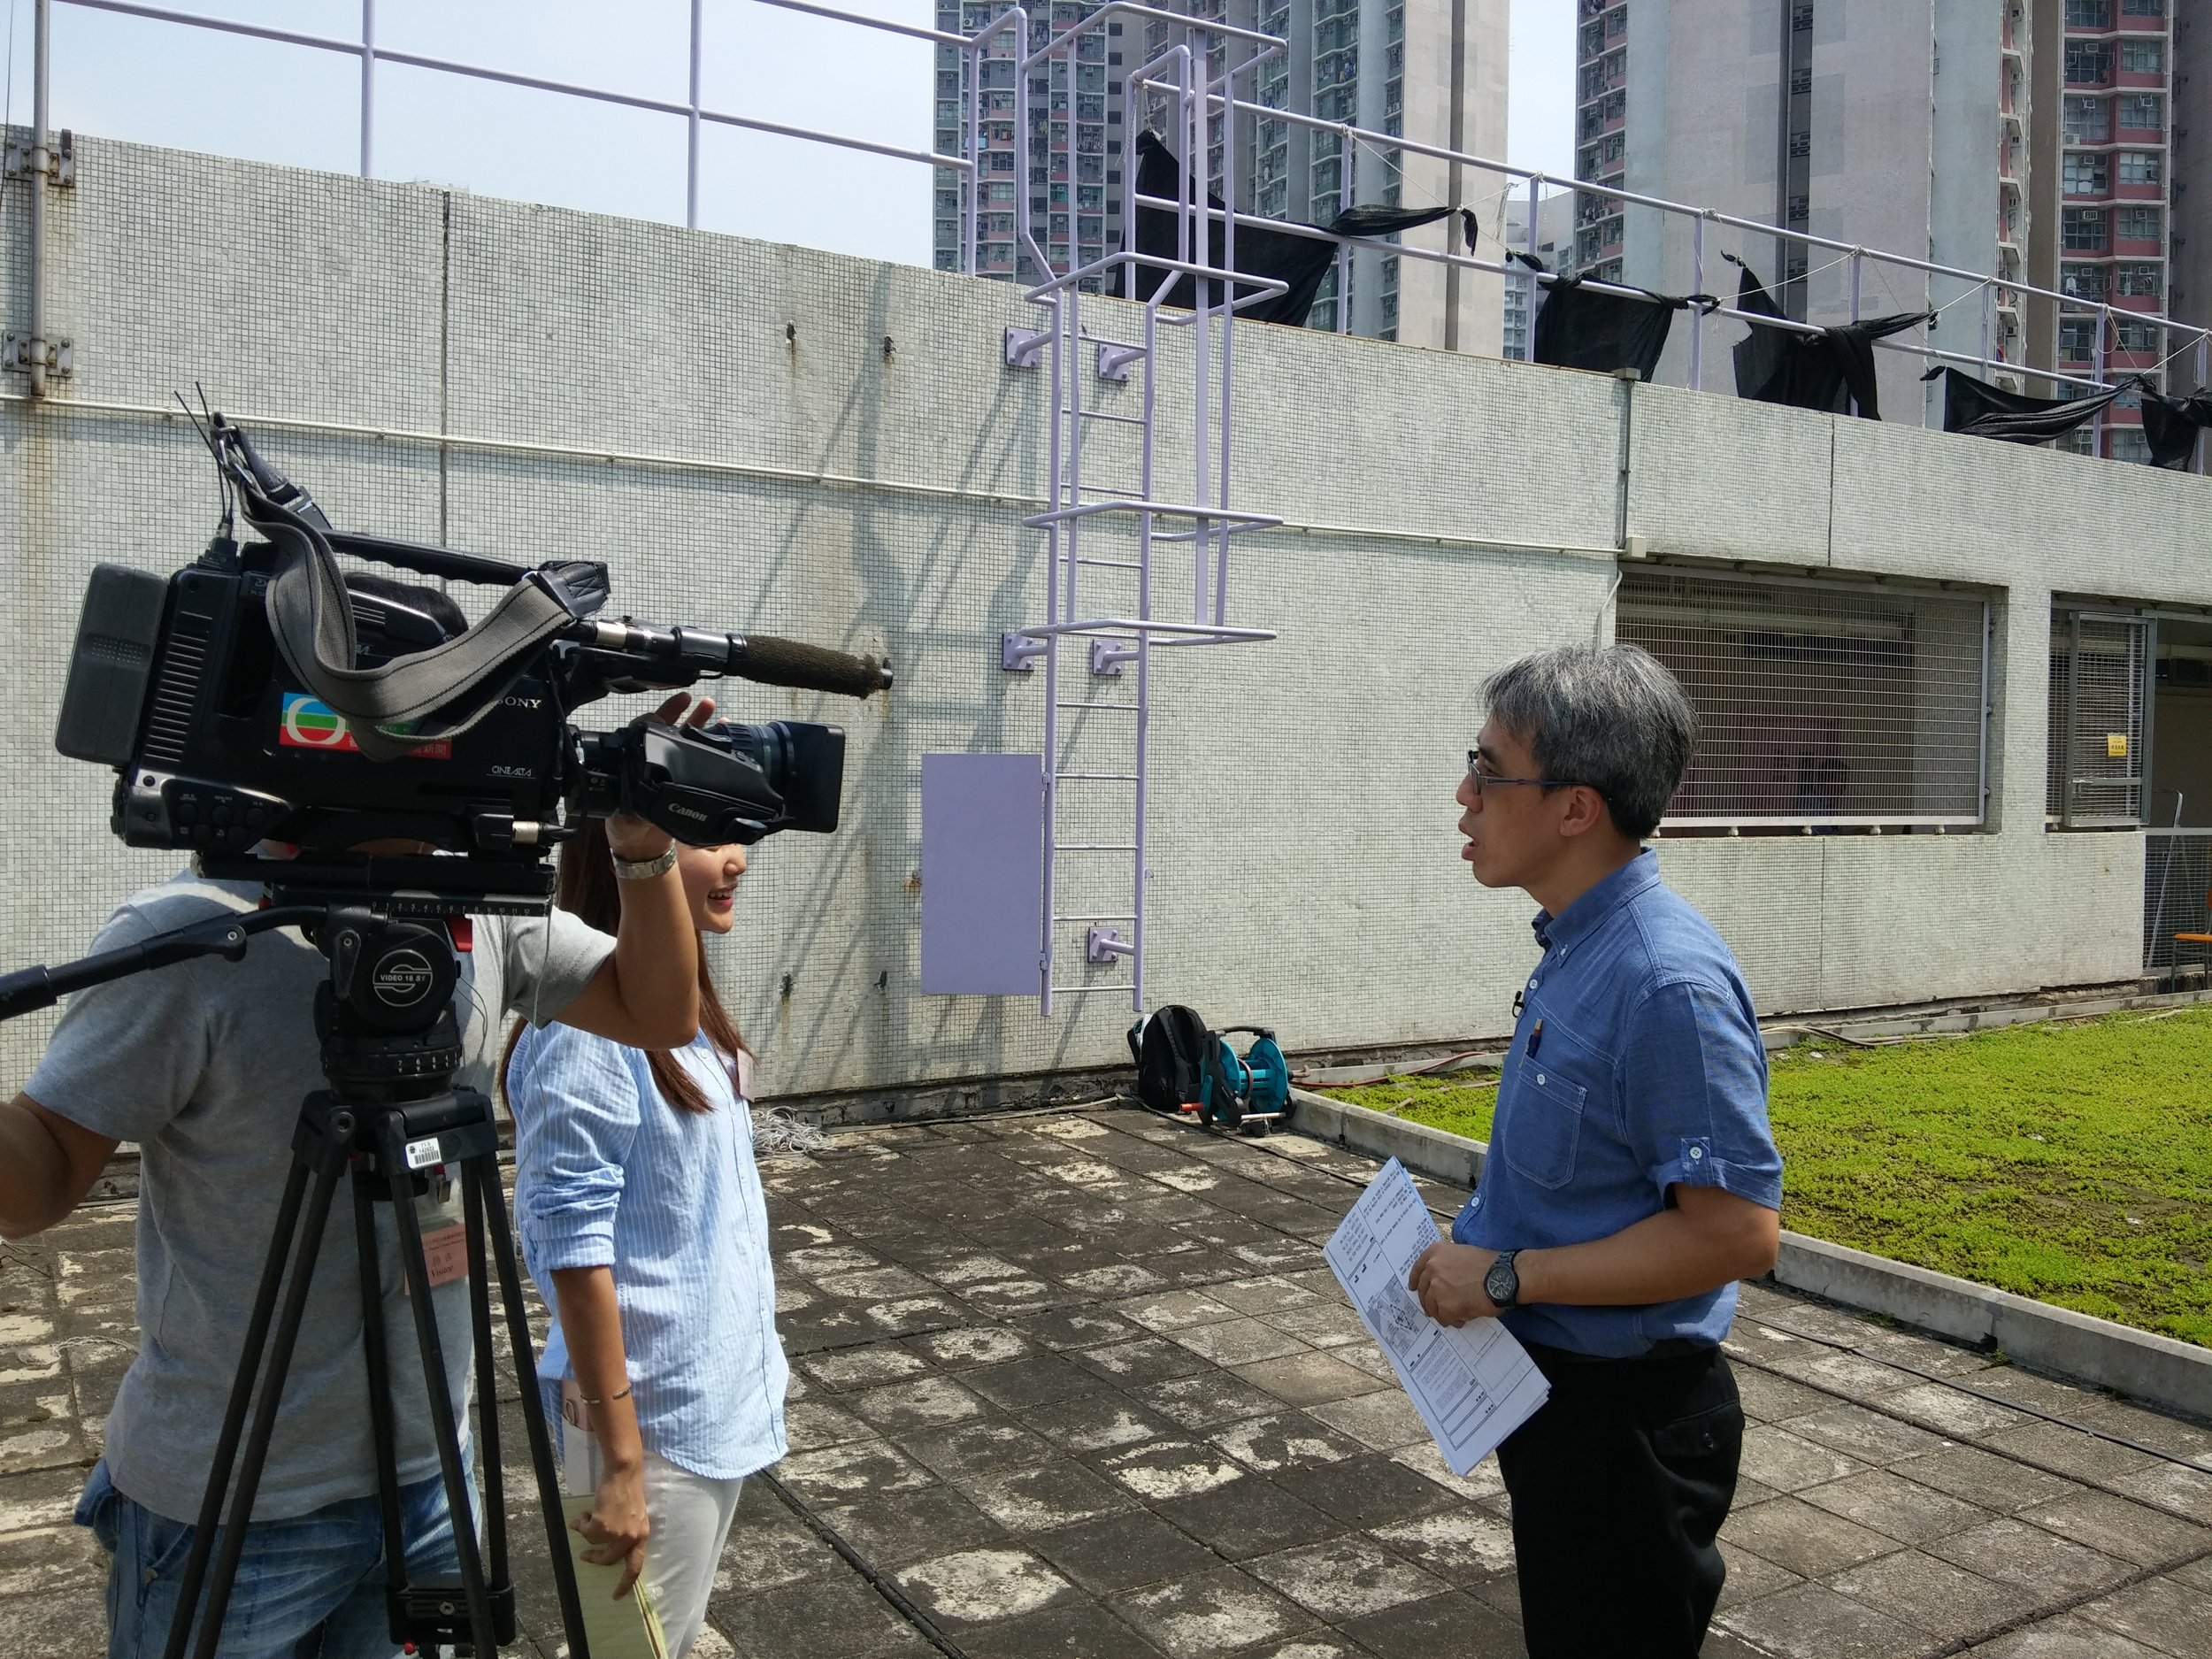 Green roof collapse incident at the City University of Hong Kong